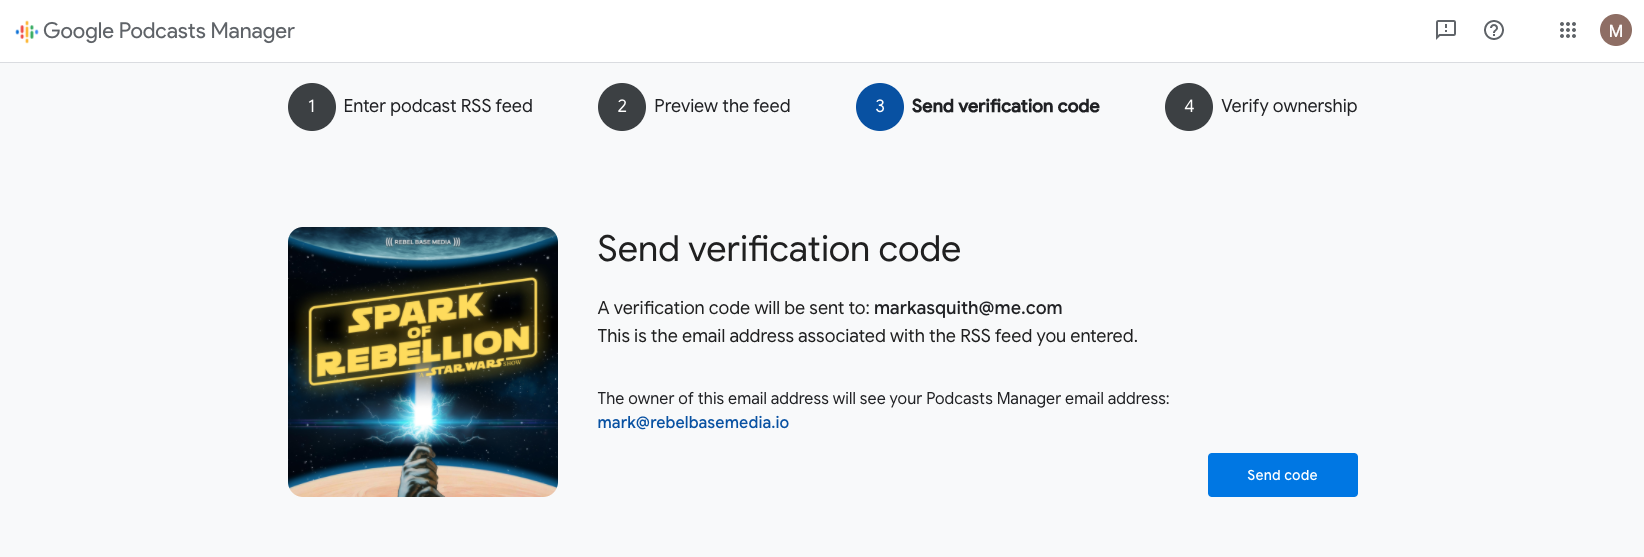 A screenshot of the 'send verification code' step of submitting a podcast to Google Podcasts Manager. In this example, Google is sending a verification code to the email address attached to Spark of Rebellion podcast.